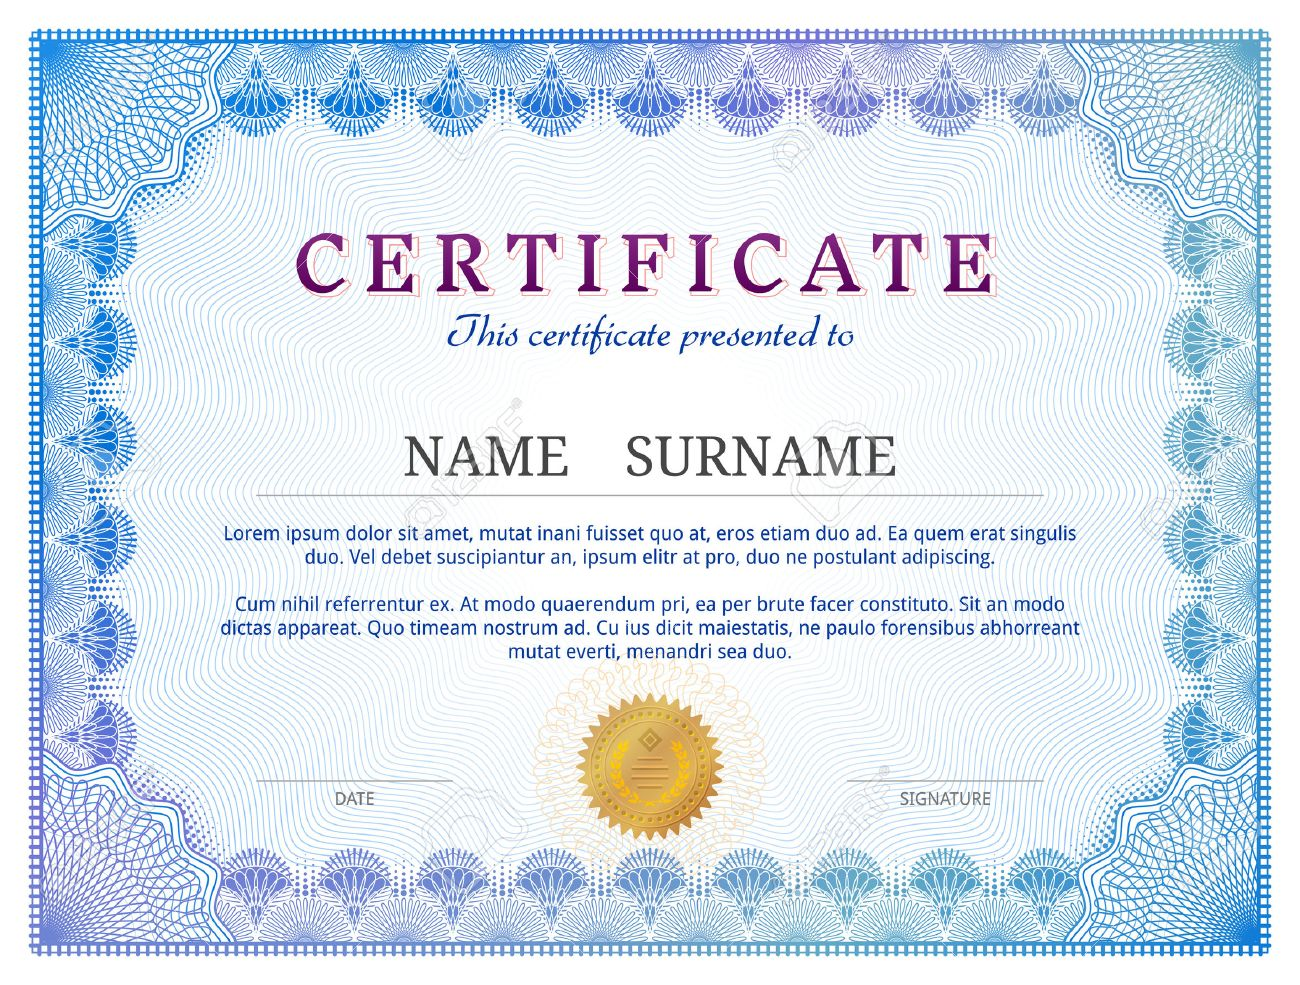 Certificate Template With Guilloche Elements. Blue Diploma Border ...